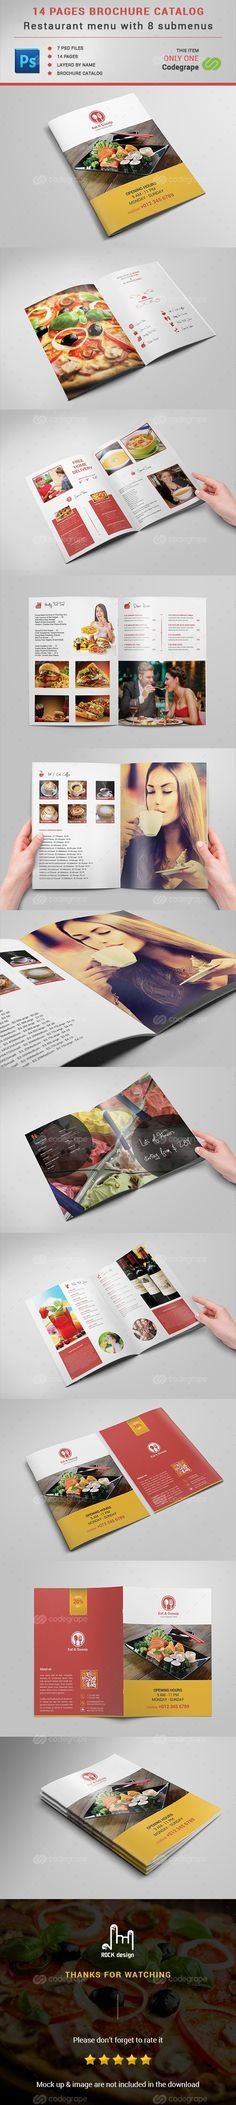 14 Pages Brochure Catalog on @codegrape. More Info…